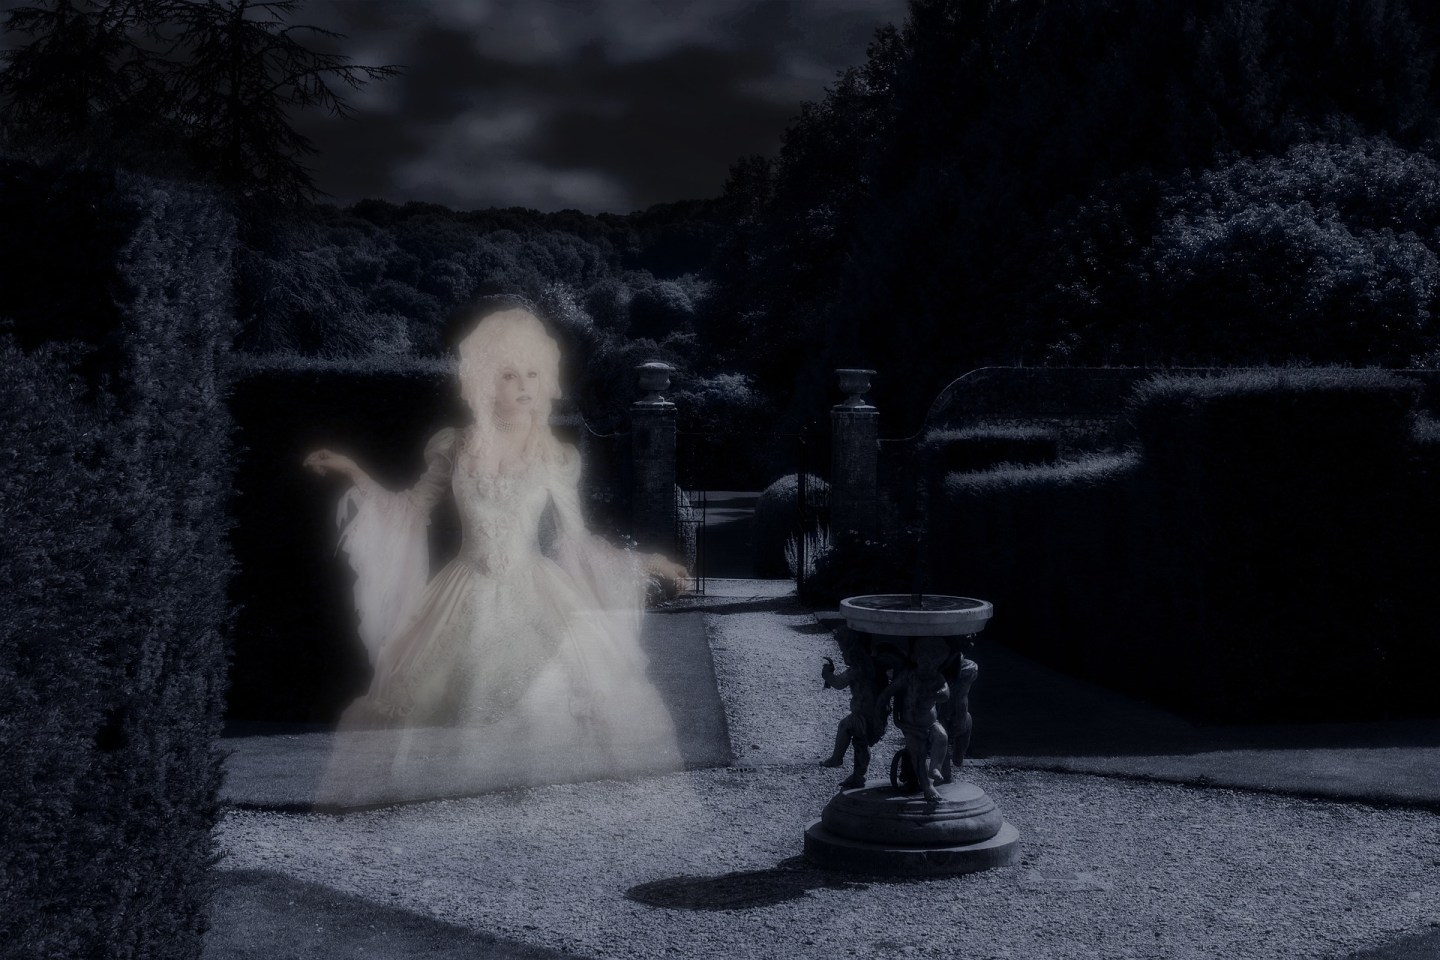 Hauntings: Why is There Always a Woman in White?